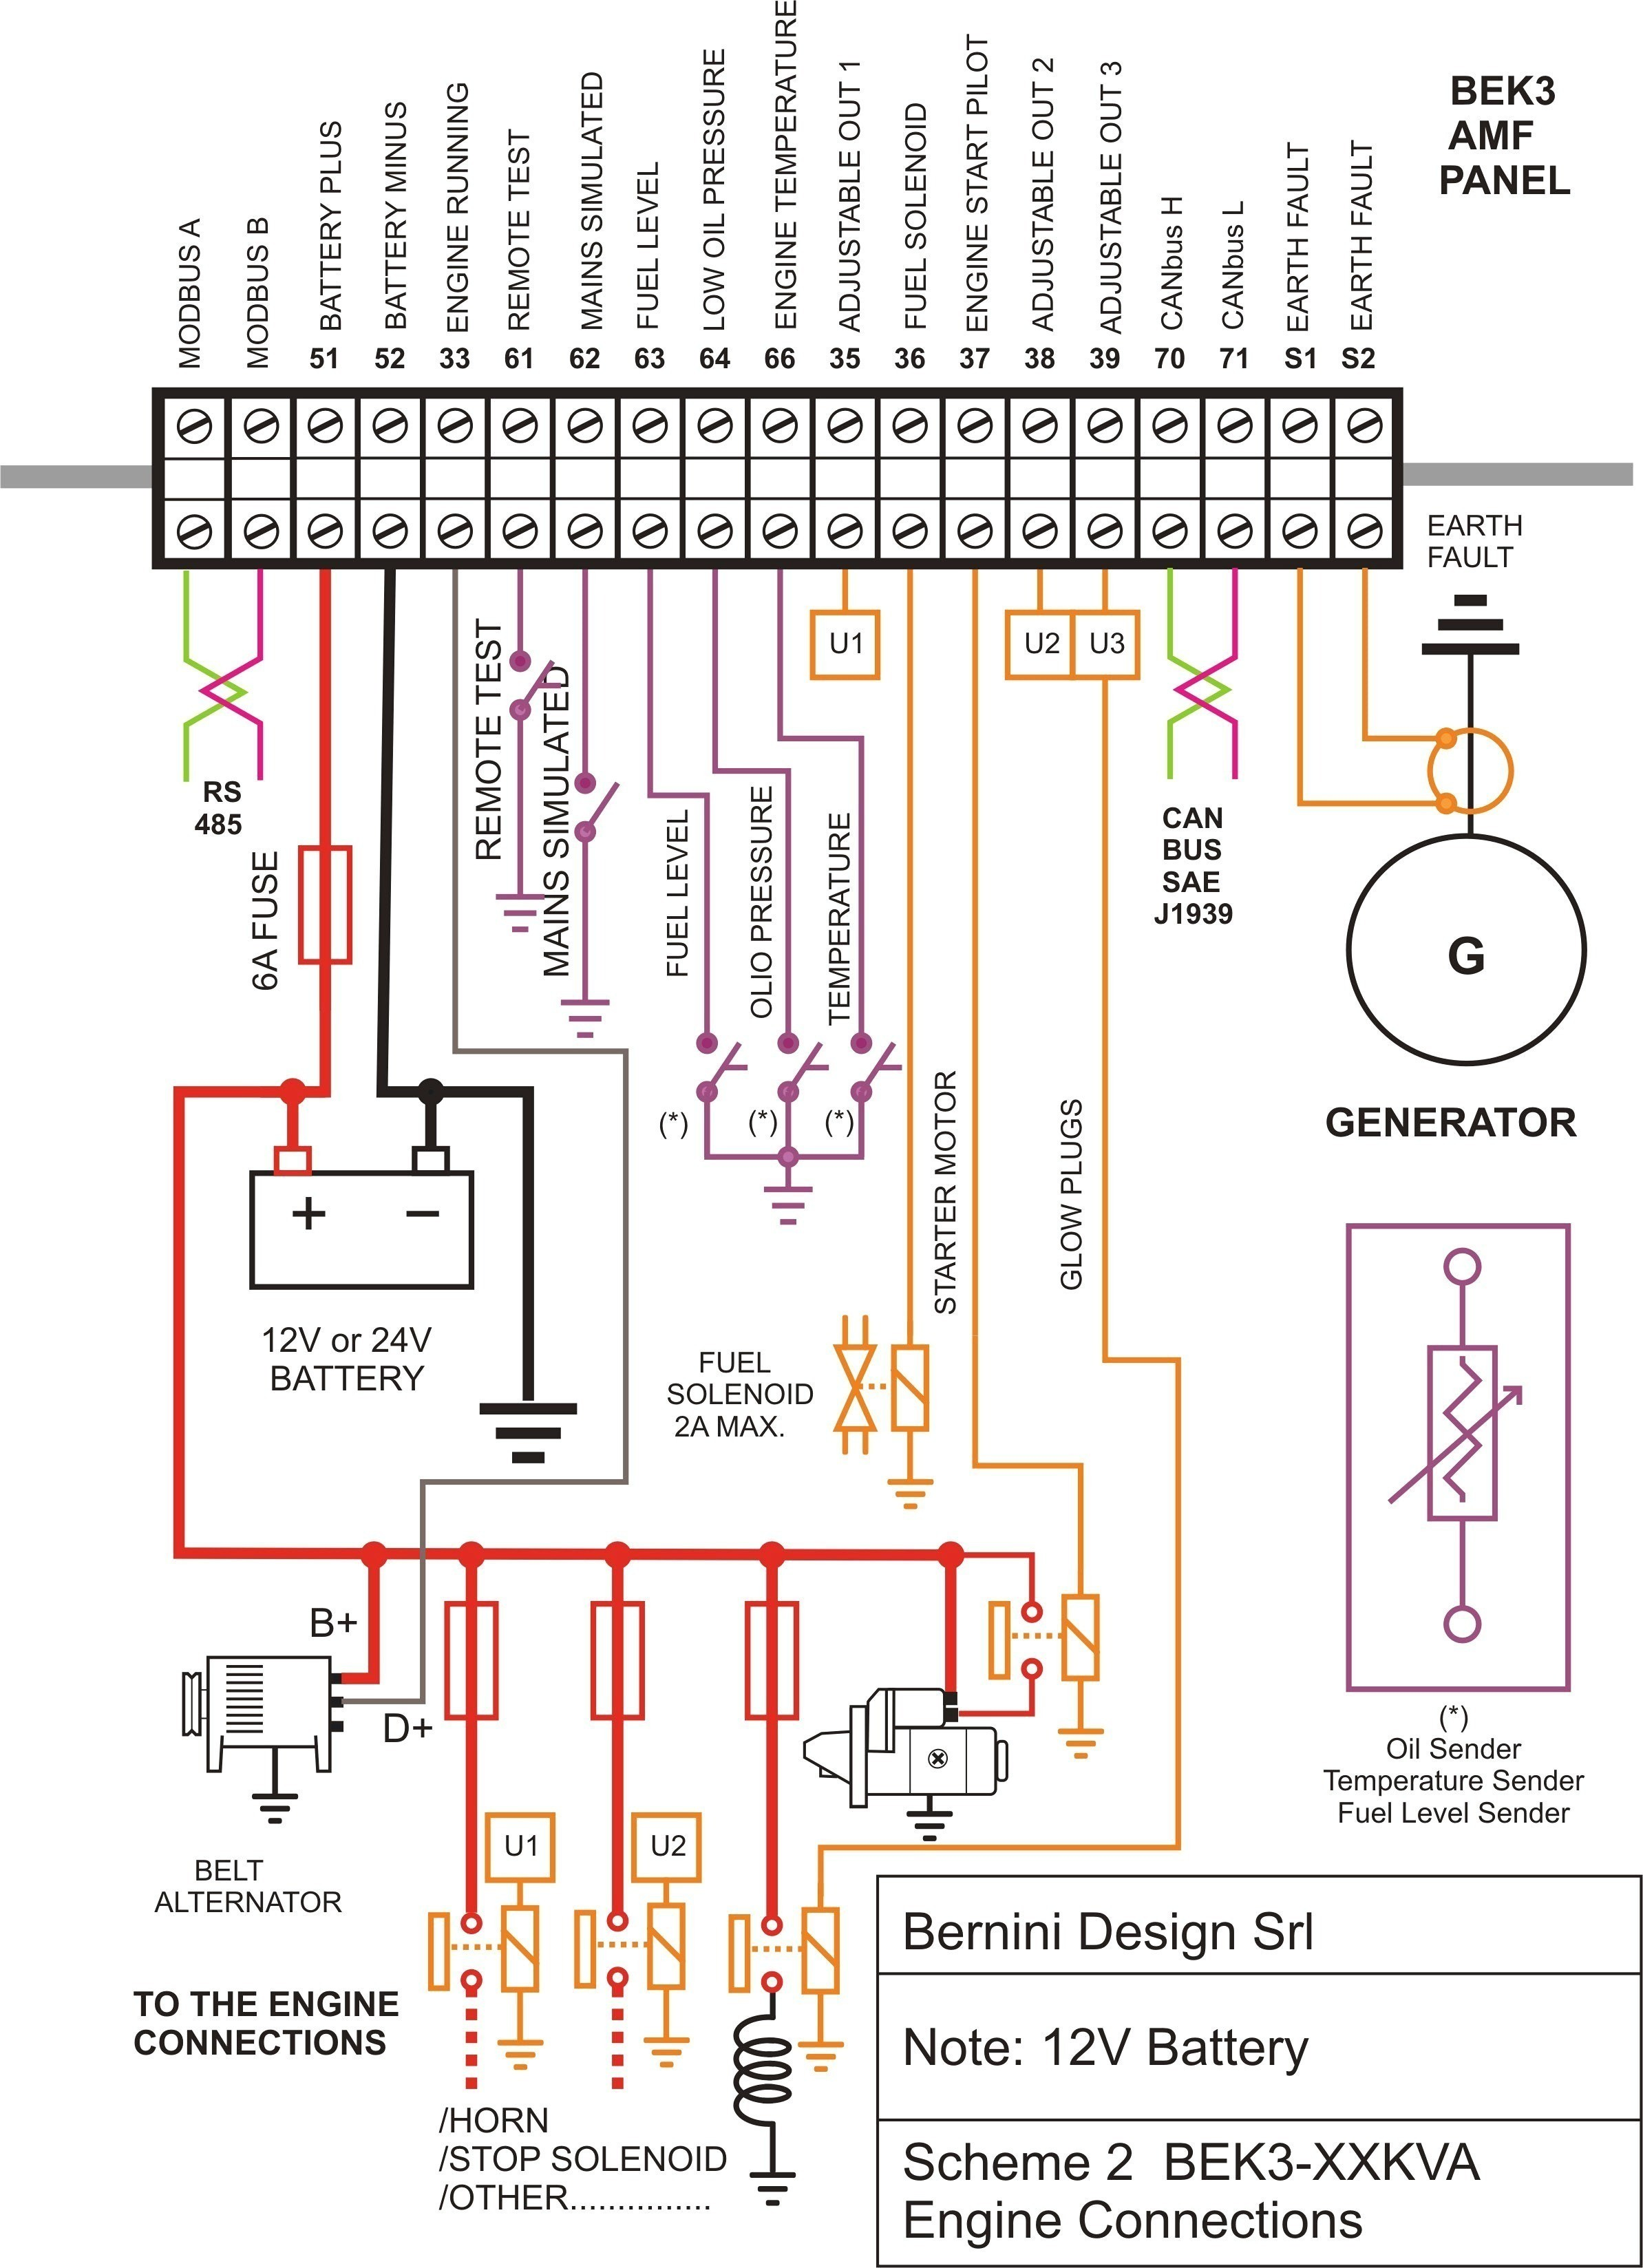 cole hersee 7 pin wiring diagram best wiring library Automotive Rocker Switches tarp switch wiring diagram wiring diagram data continuous duty solenoid wiring diagram cole hersee rocker switch